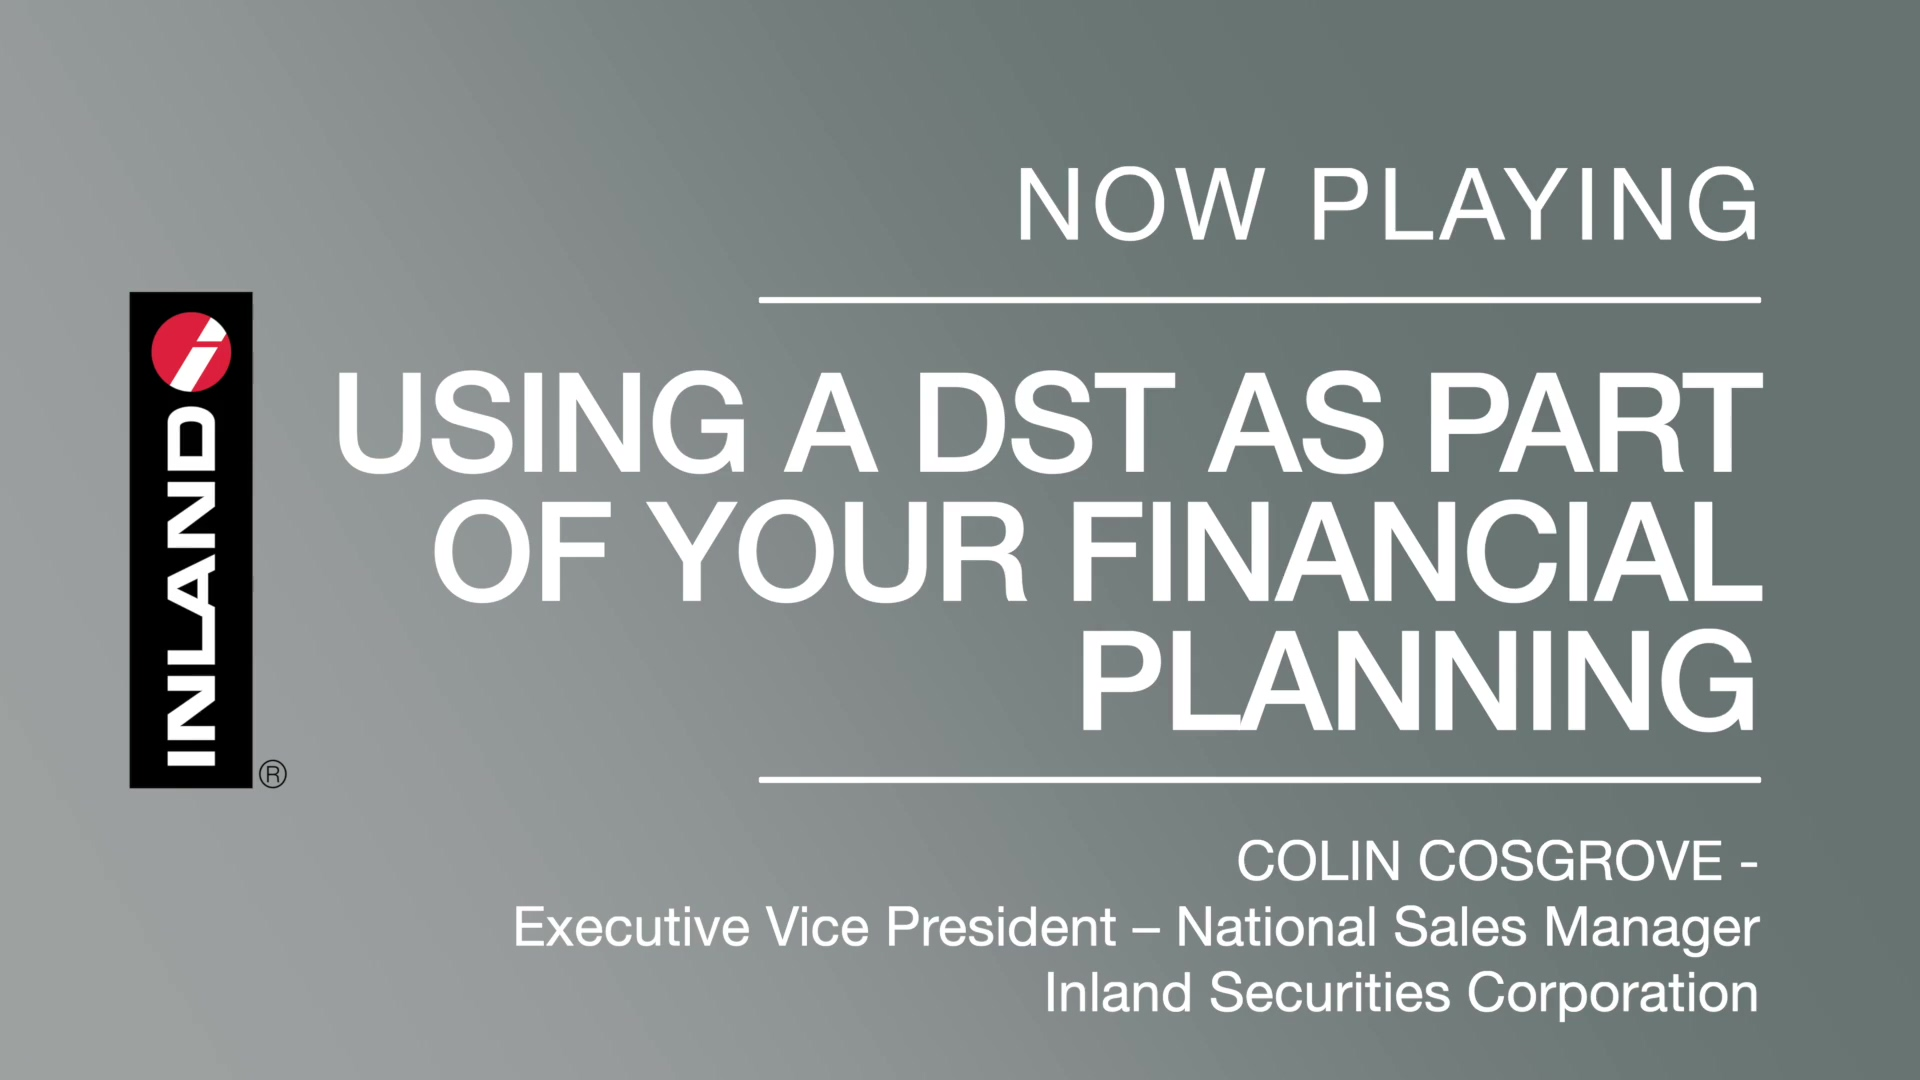 Using a DST as Part of Your Financial Planning (1)